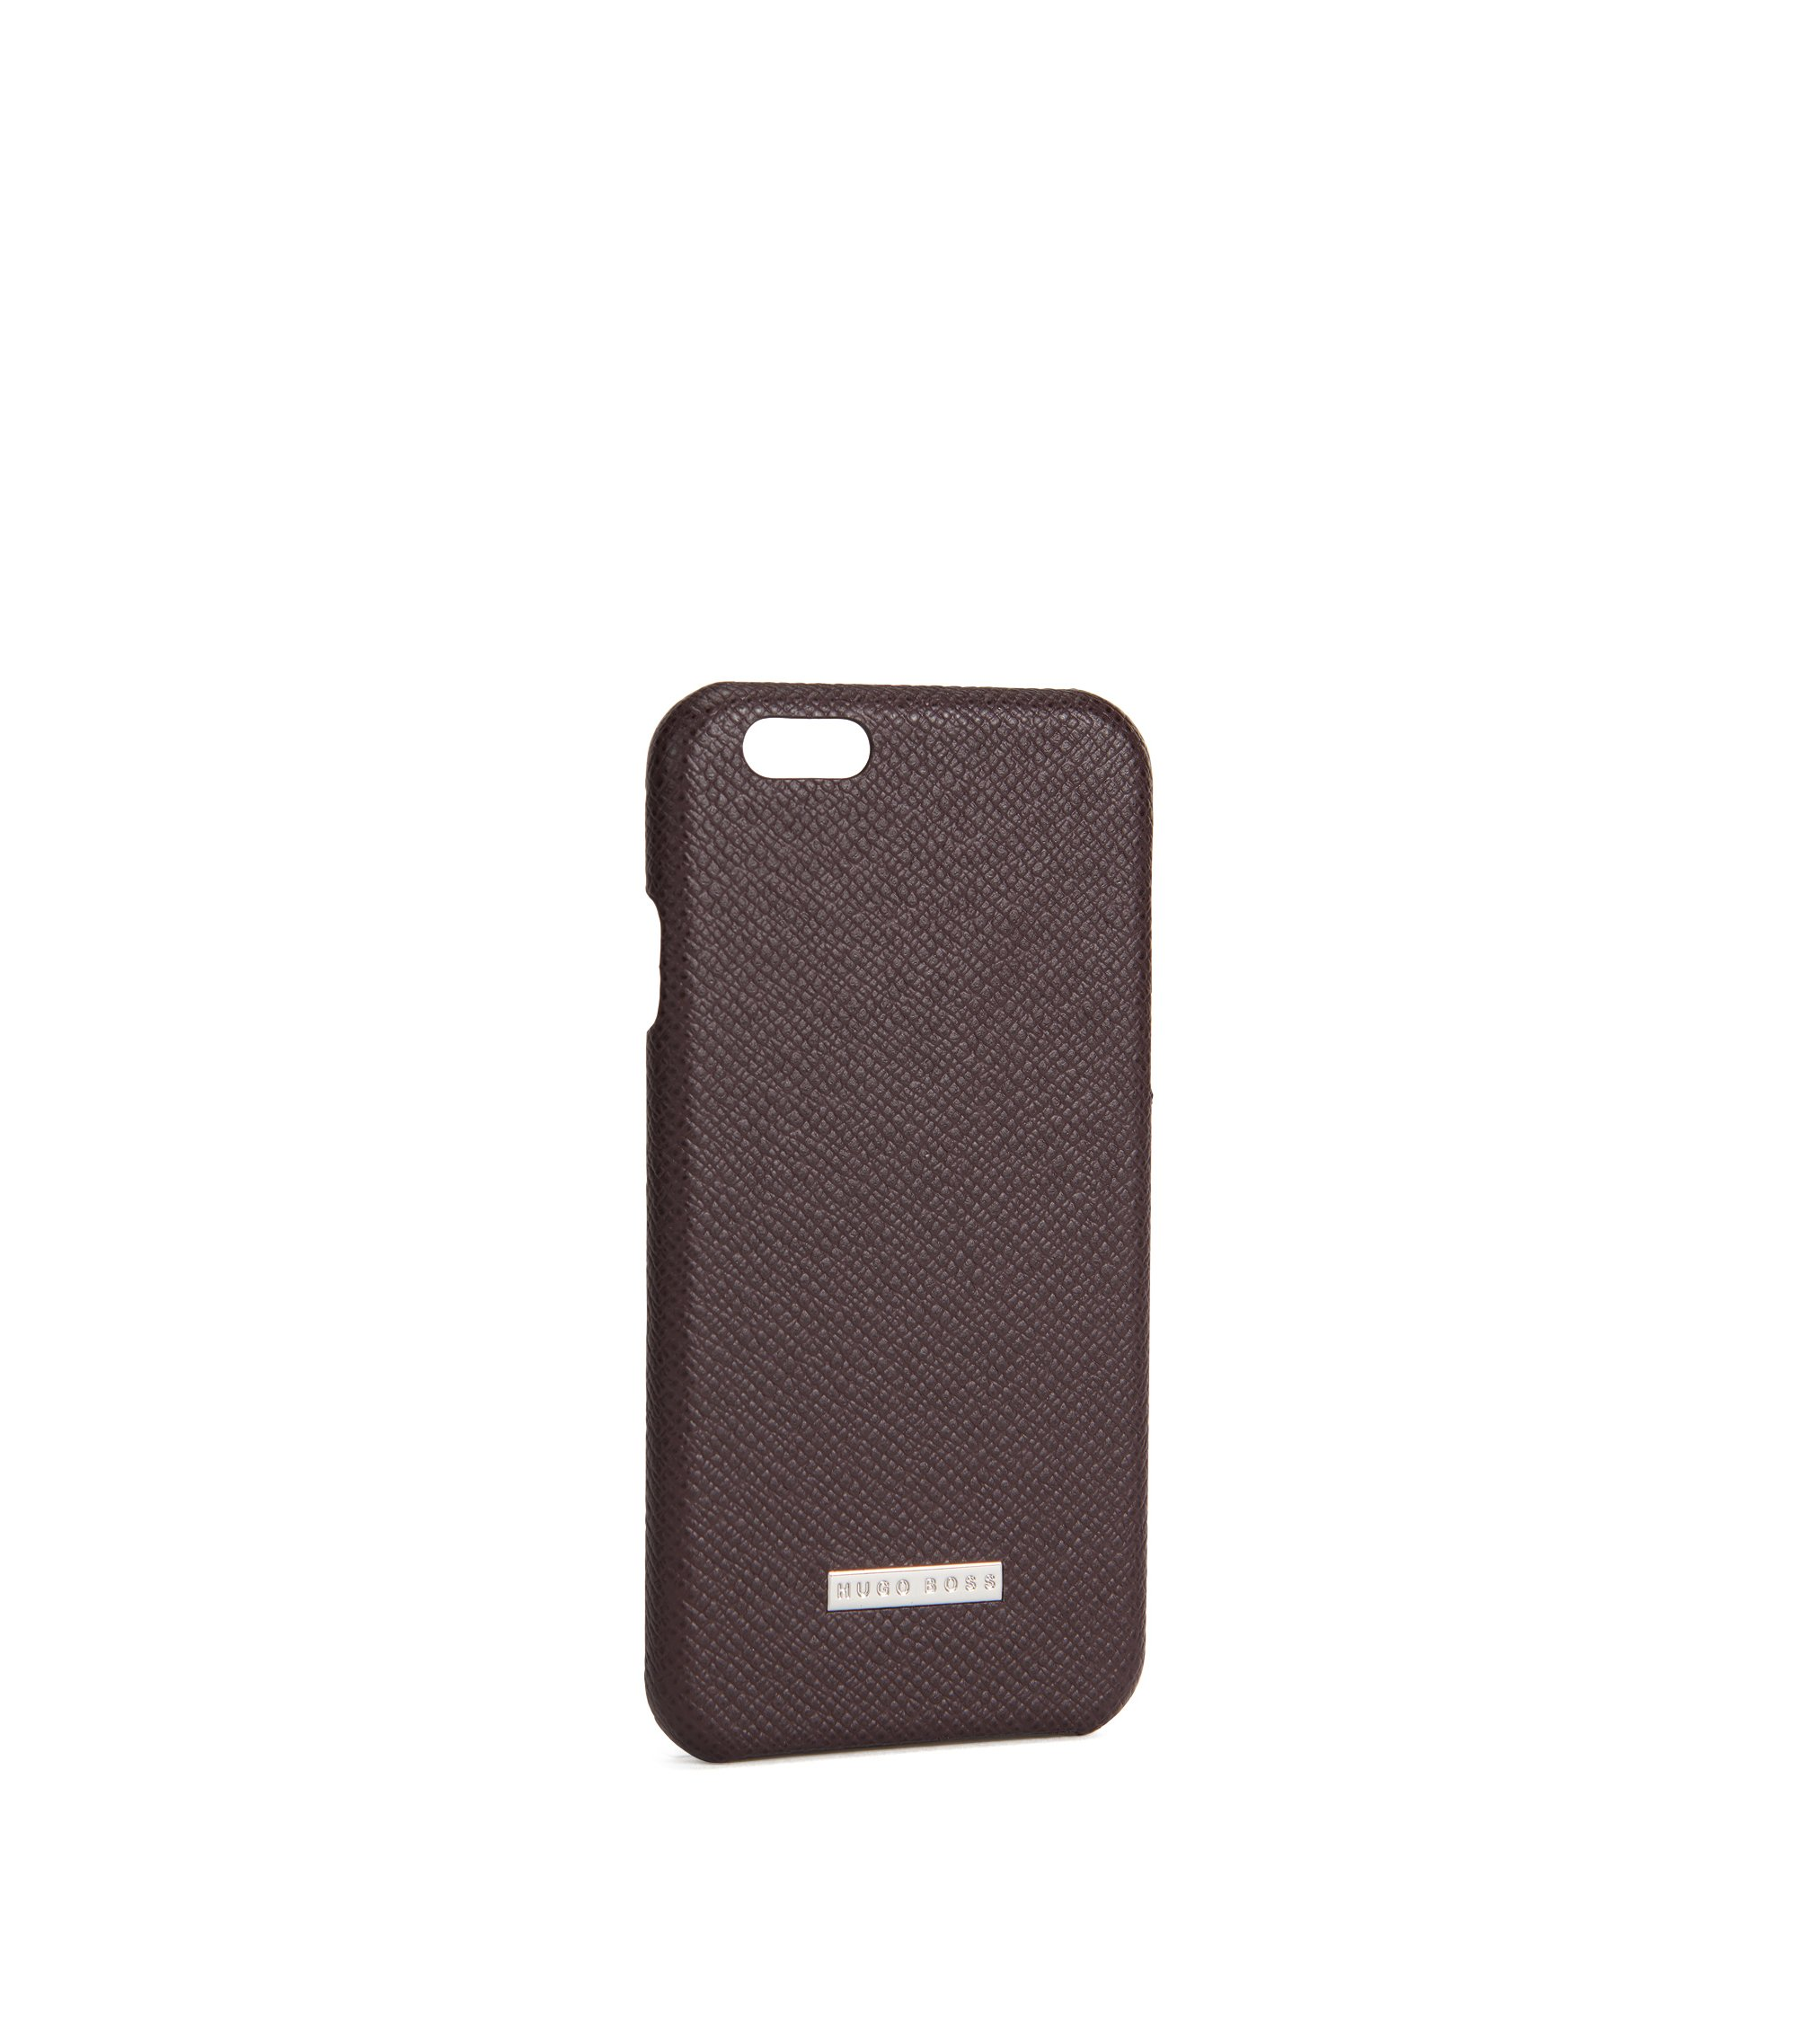 Signature Collection smartphone cover in palmellato leather, Dark Red